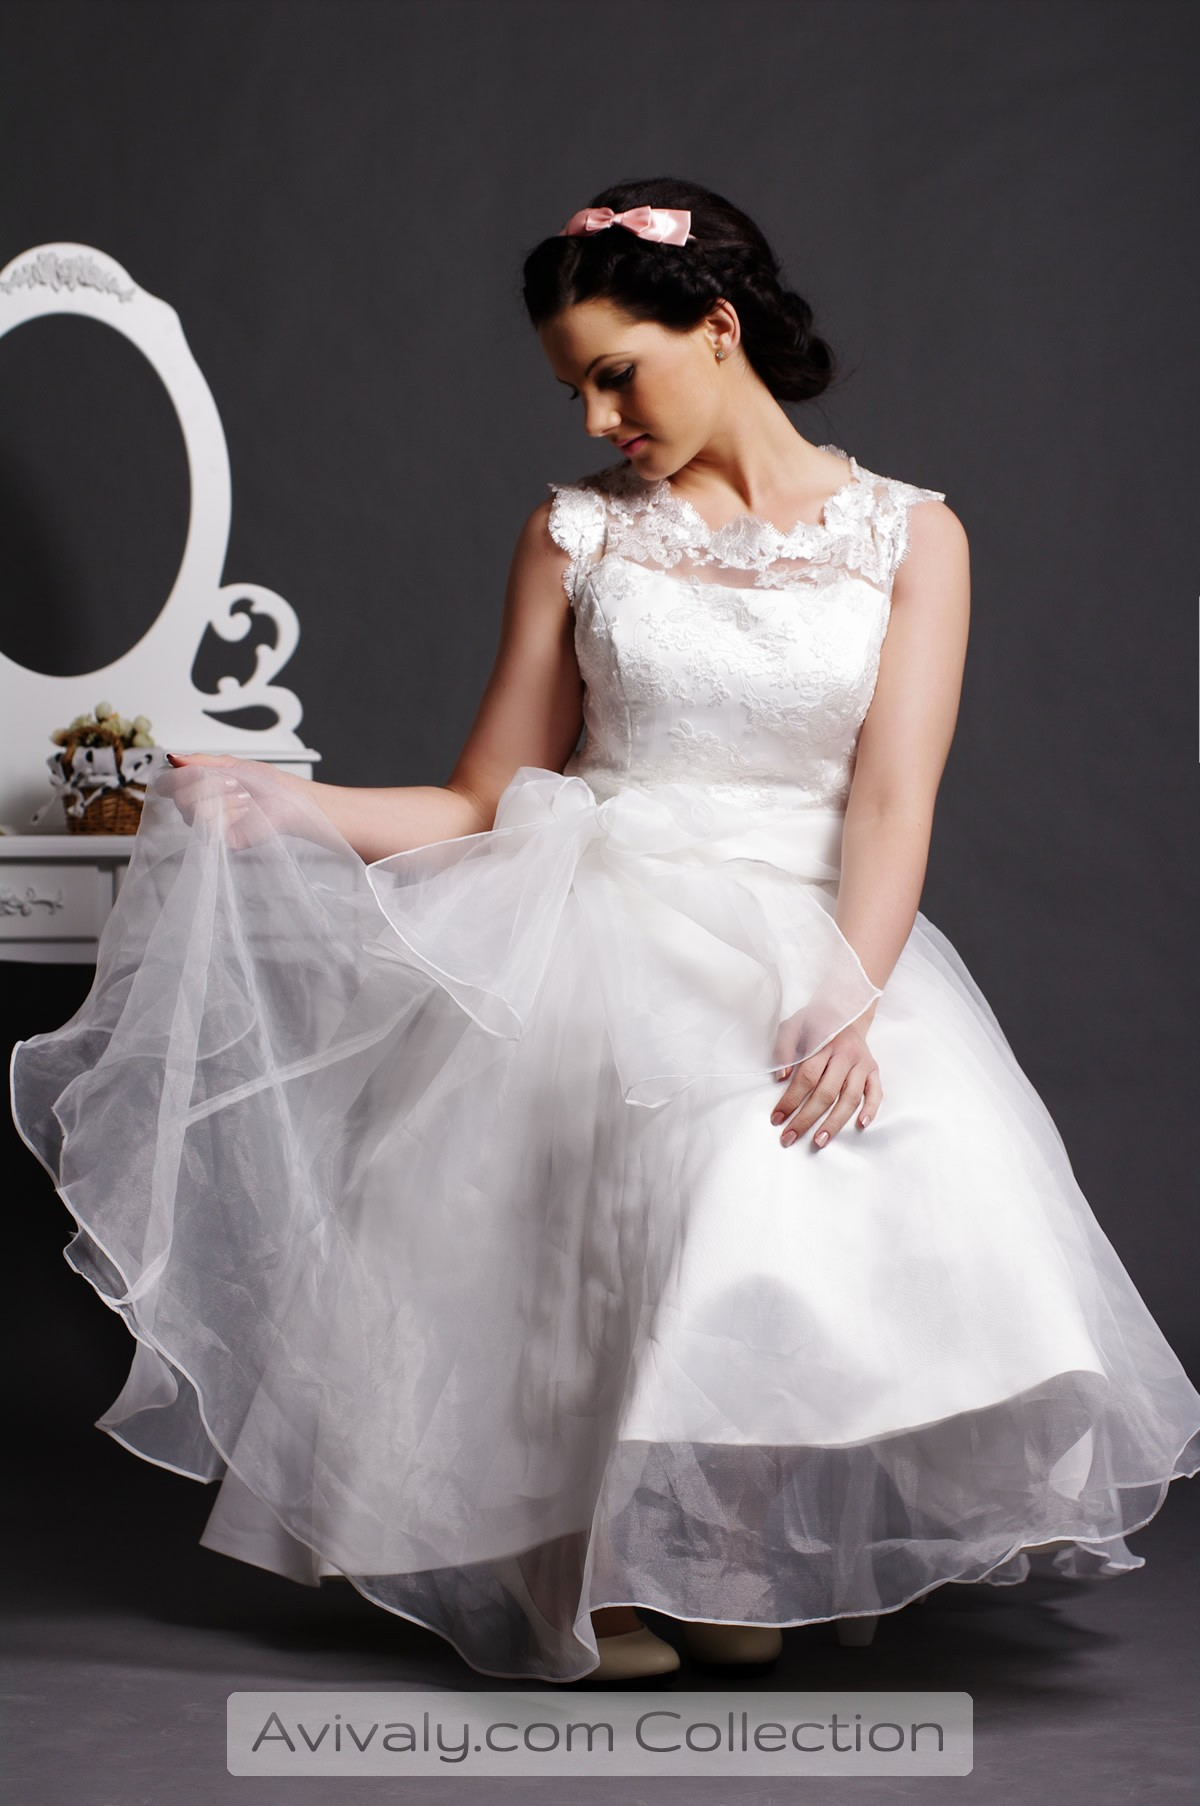 Lola - Organza Sash Belt Melted into Ball Gown Skirt for Fairytale Look